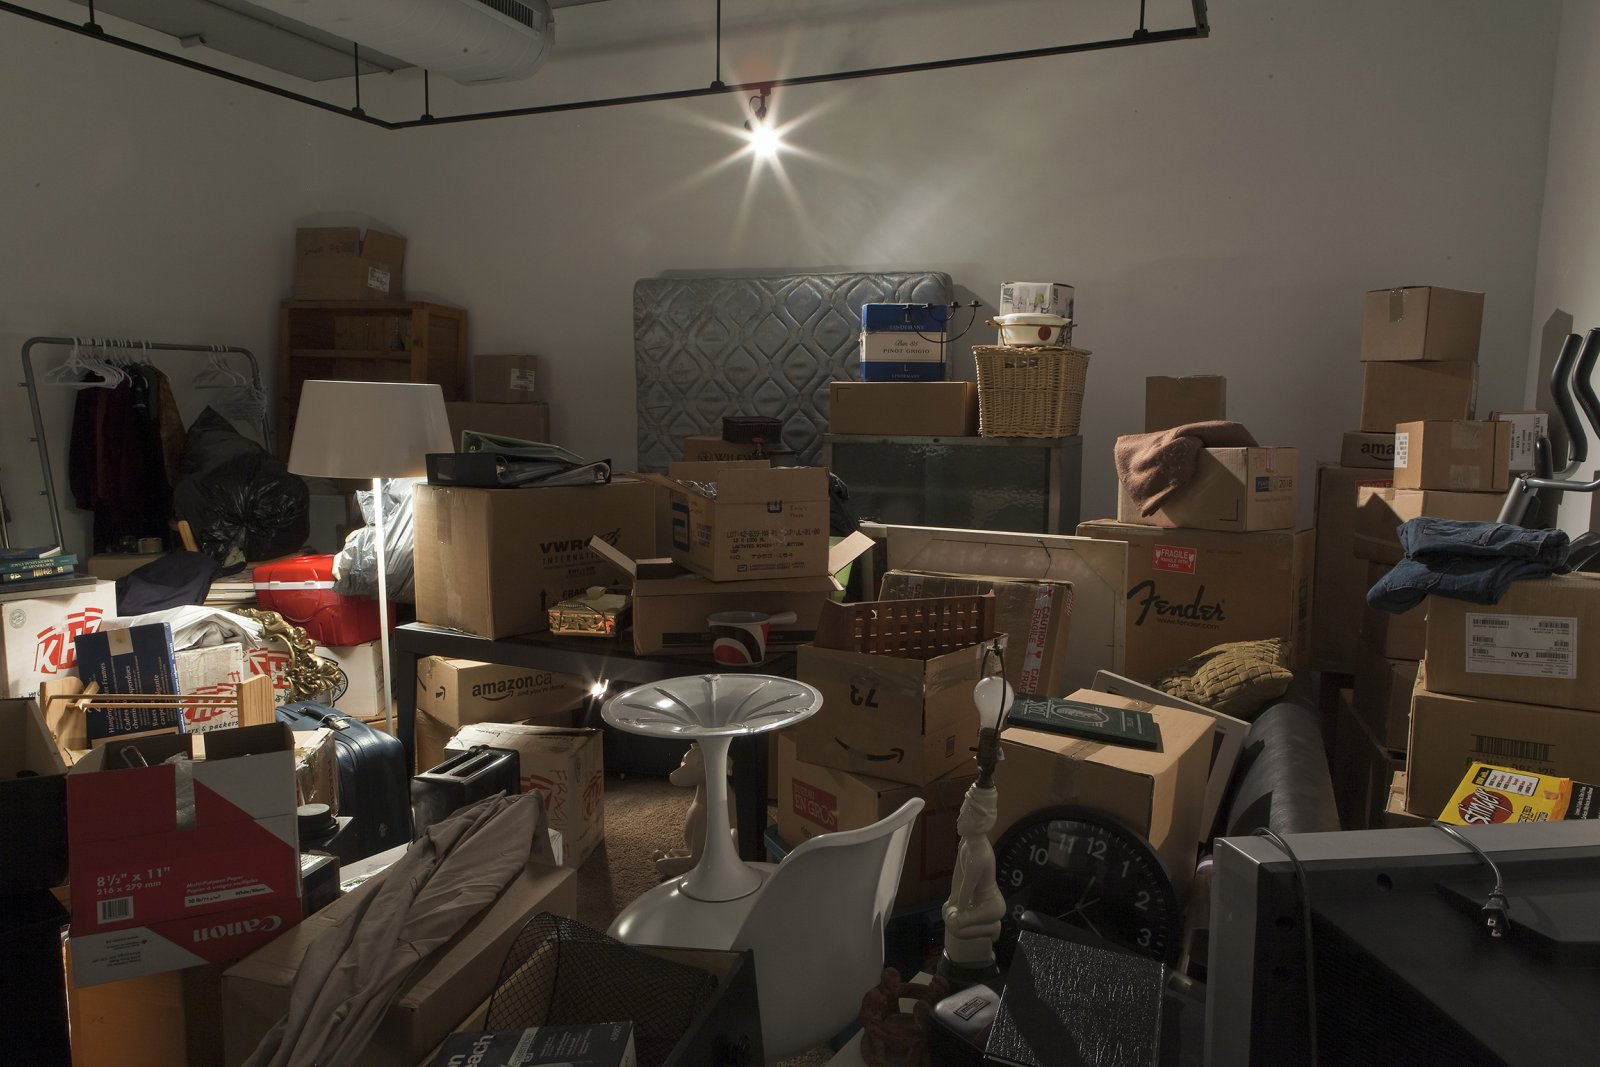 Liz Magor, One Bedroom Apartment (detail), 1996, polyester resin, contents of a one-bedroom apartment, dimensions variable. Installation view, Storage Facilities, Doris McCarthy Gallery, Scarborough, ON, 2009 by Liz Magor